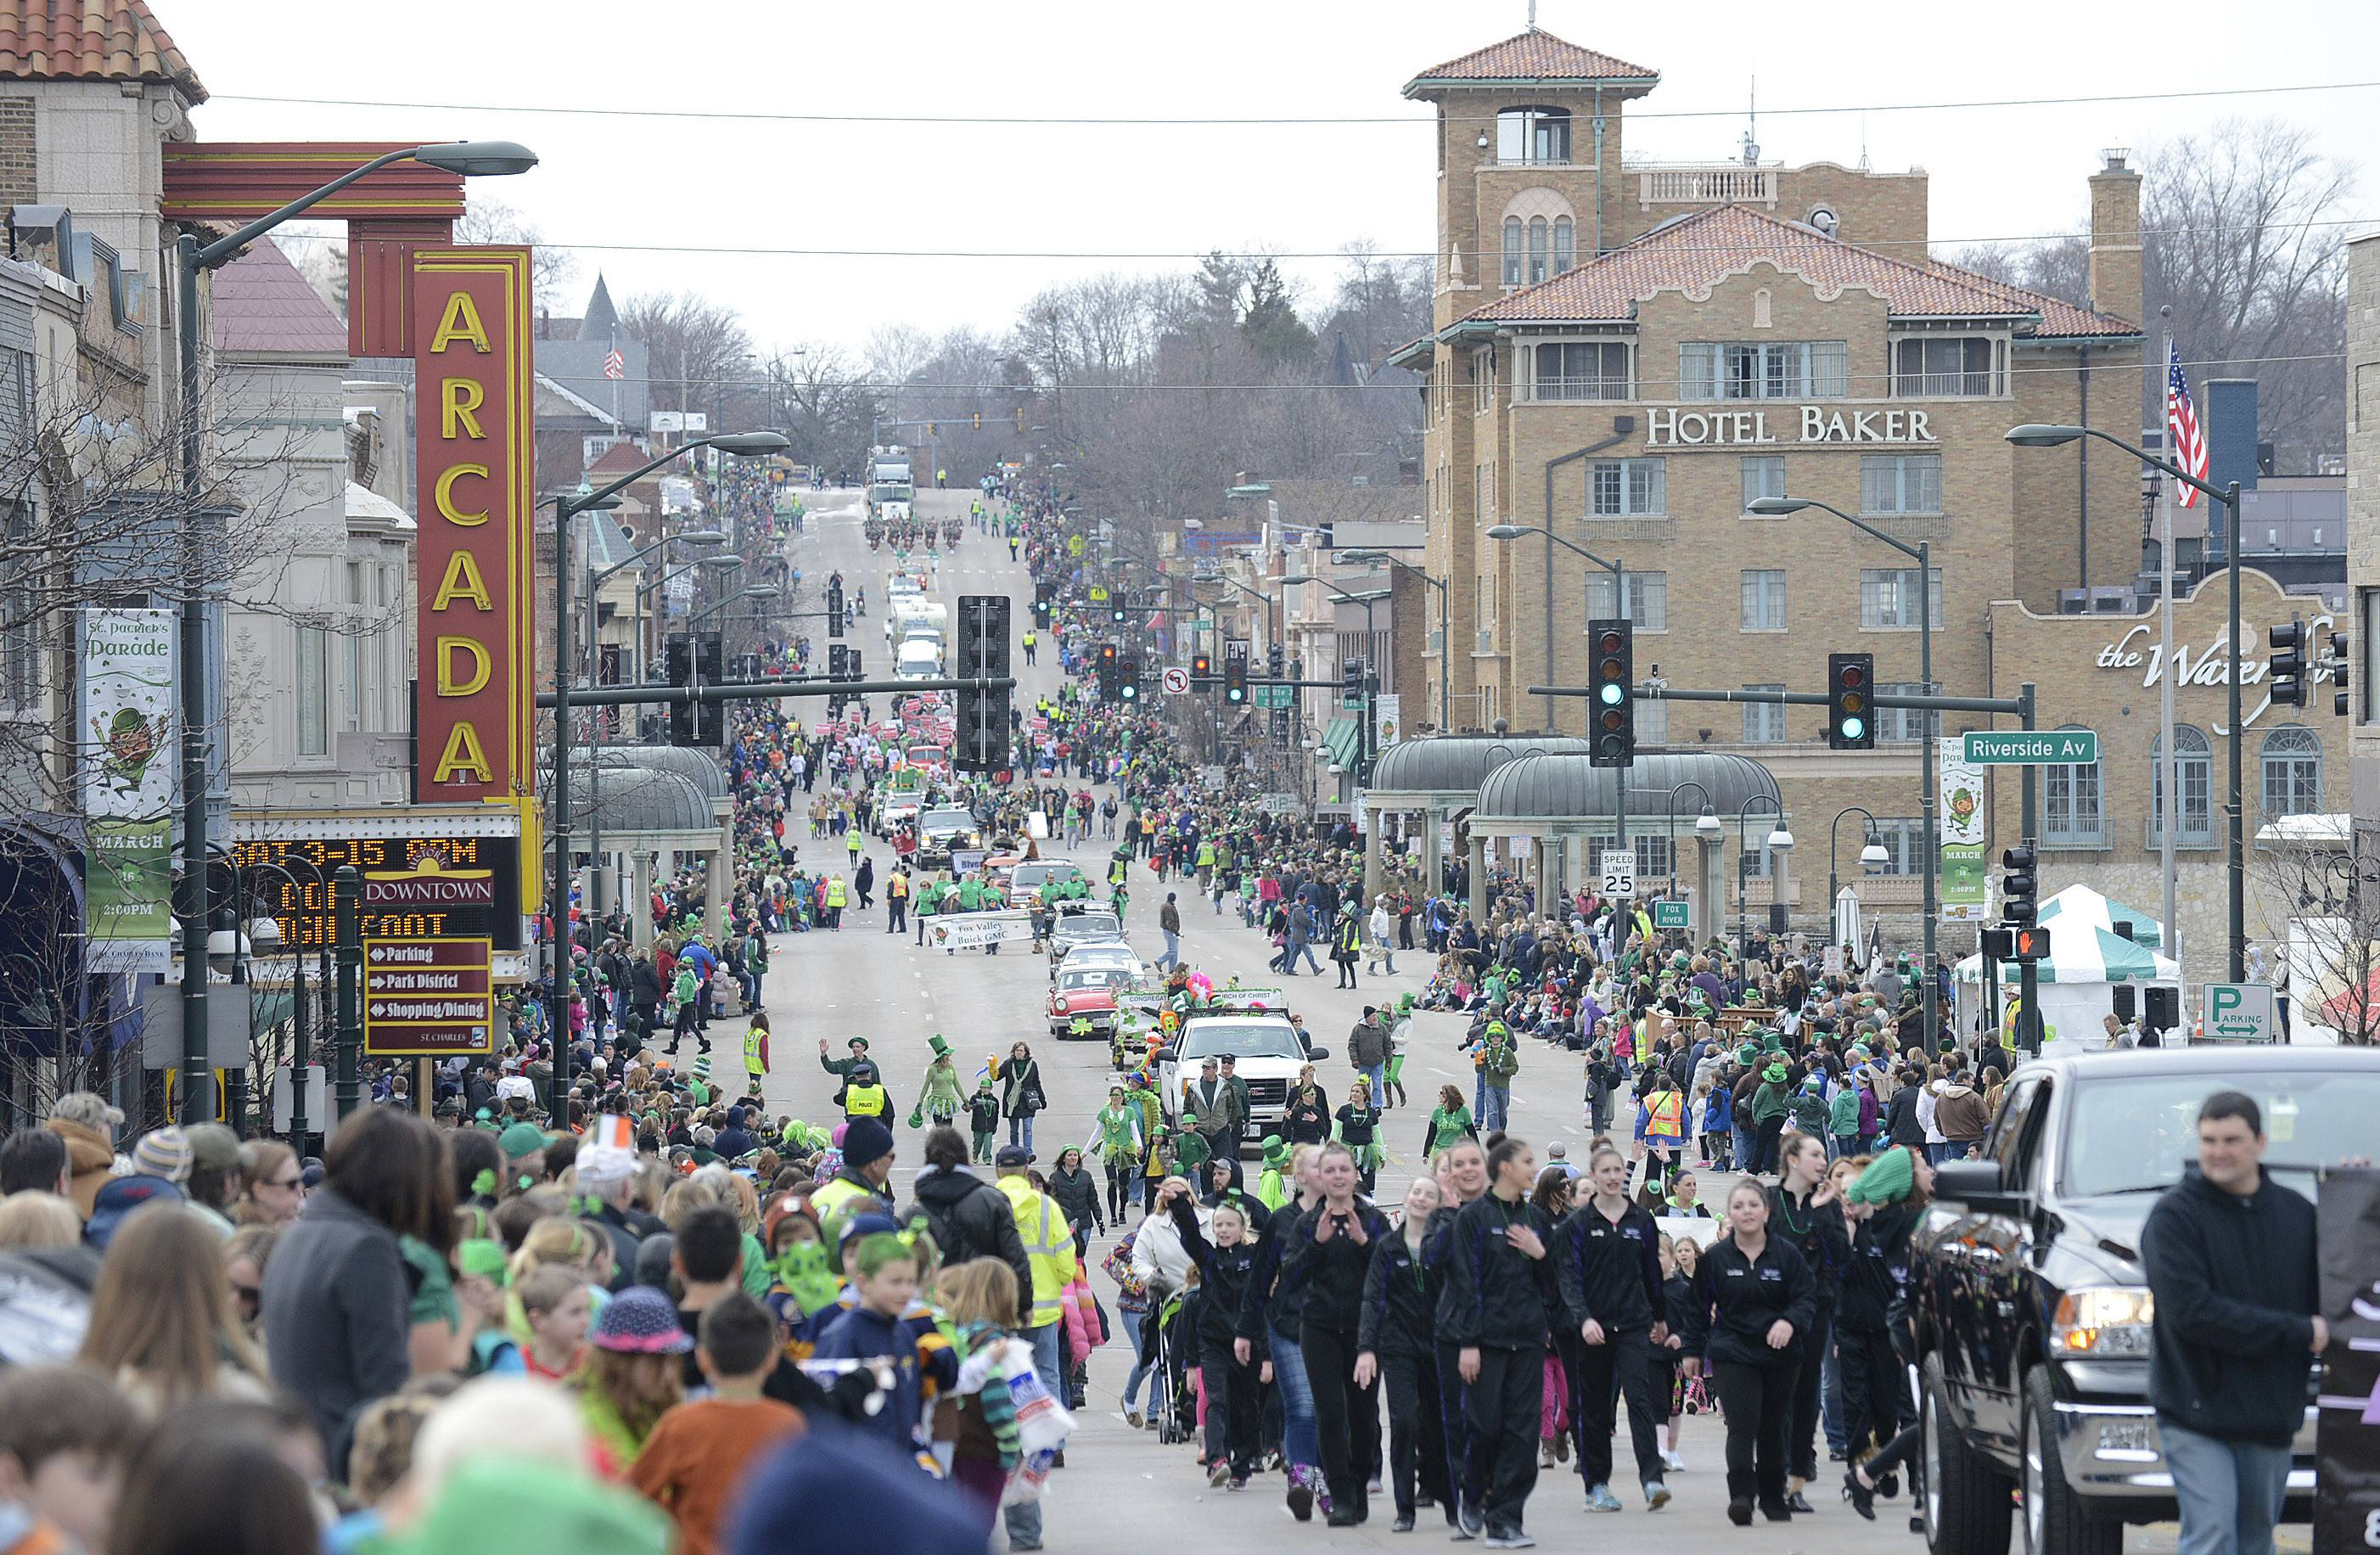 Groups make their way eastbound on Main Street in downtown St. Charles during town's annual St. Patrick's Day parade on Saturday, March 15.